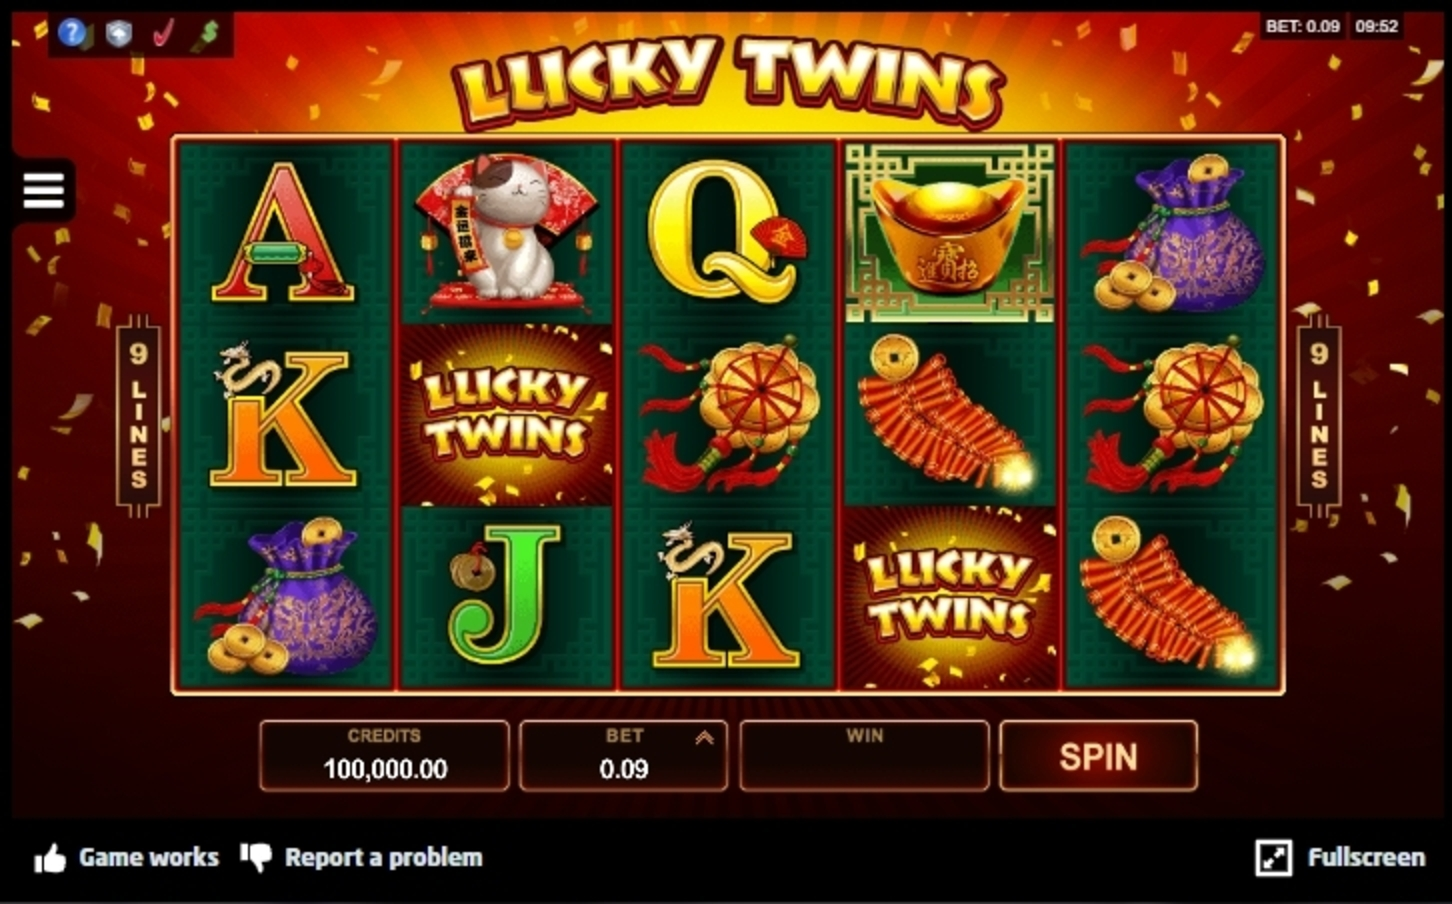 Win Money in Lucky Twins Free Slot Game by Microgaming